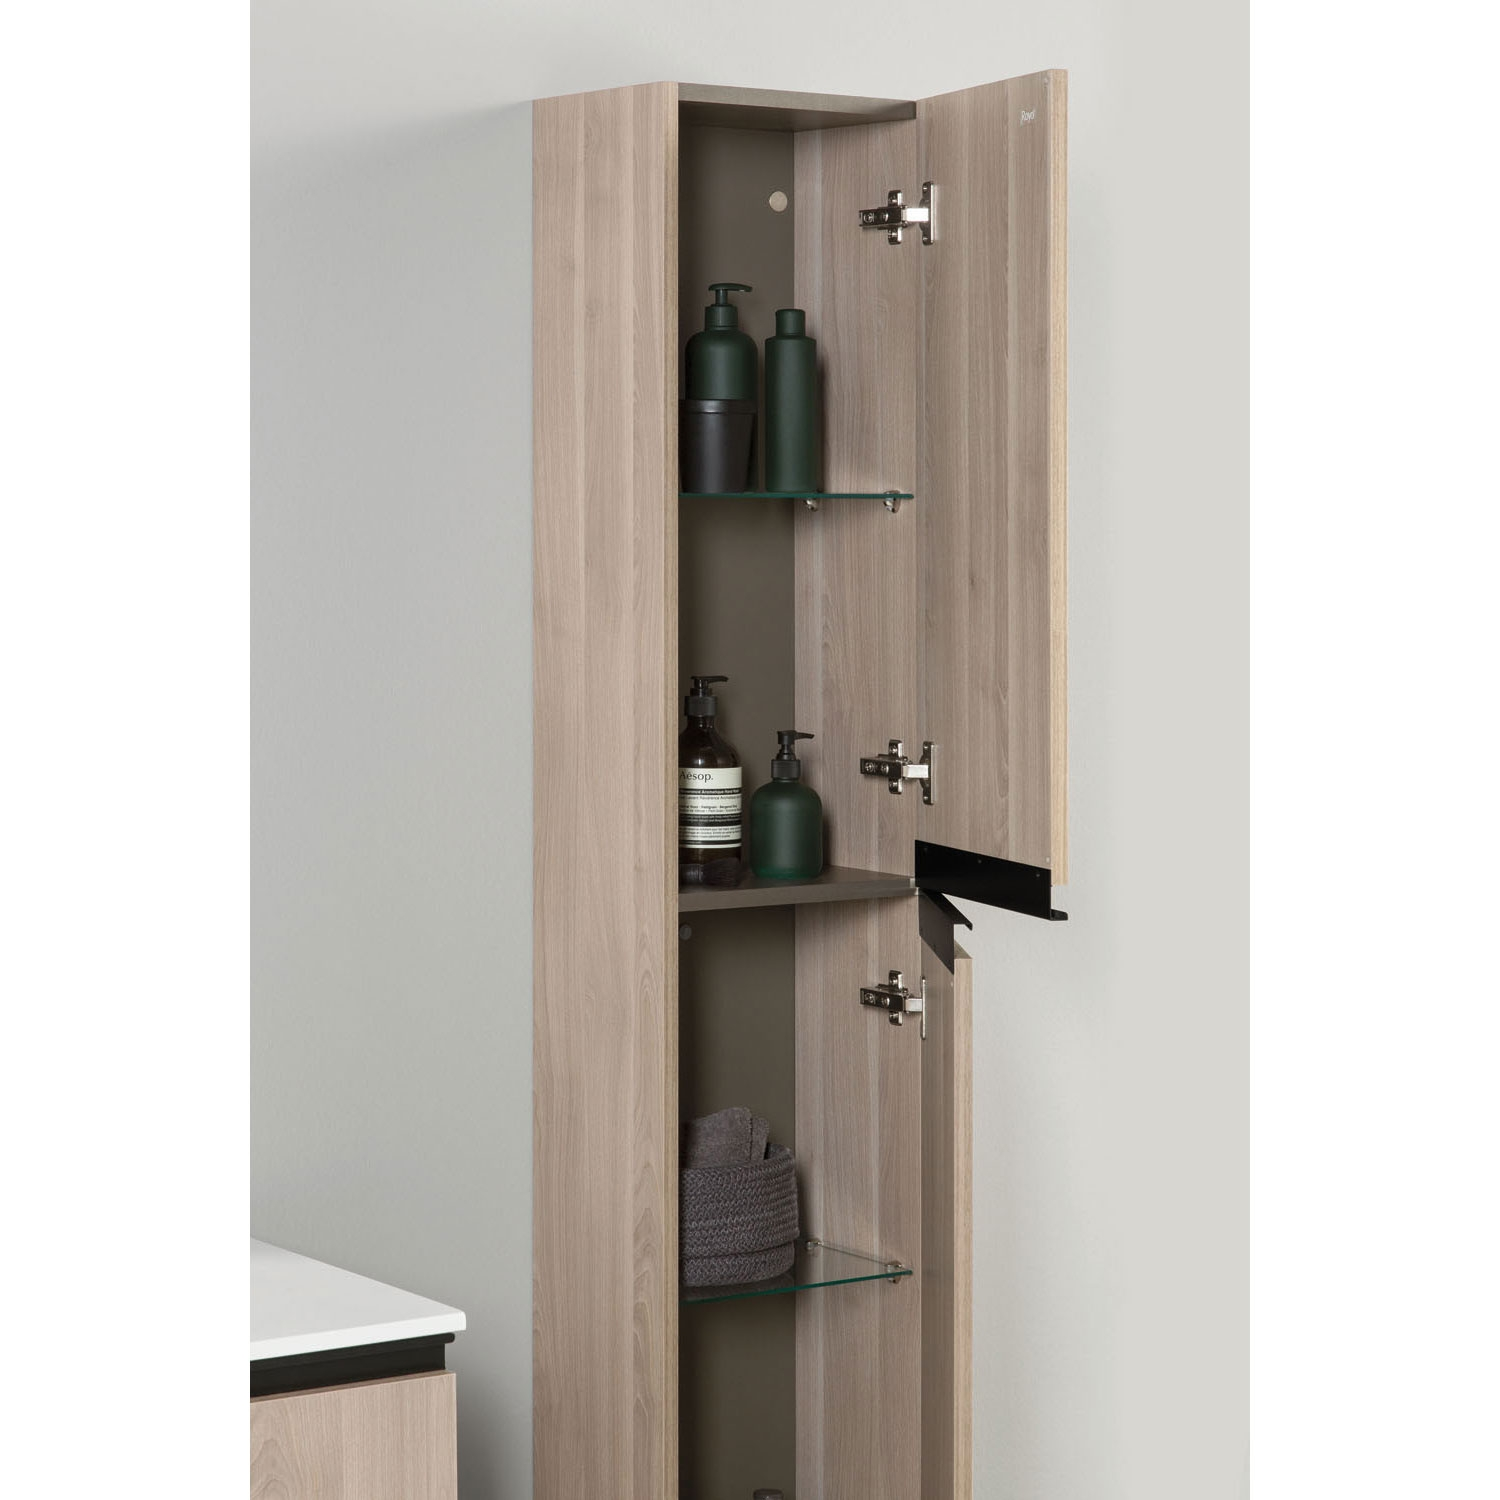 Verona Structure Wall Hung 2-Door Tall Unit 300mm Wide - Oak